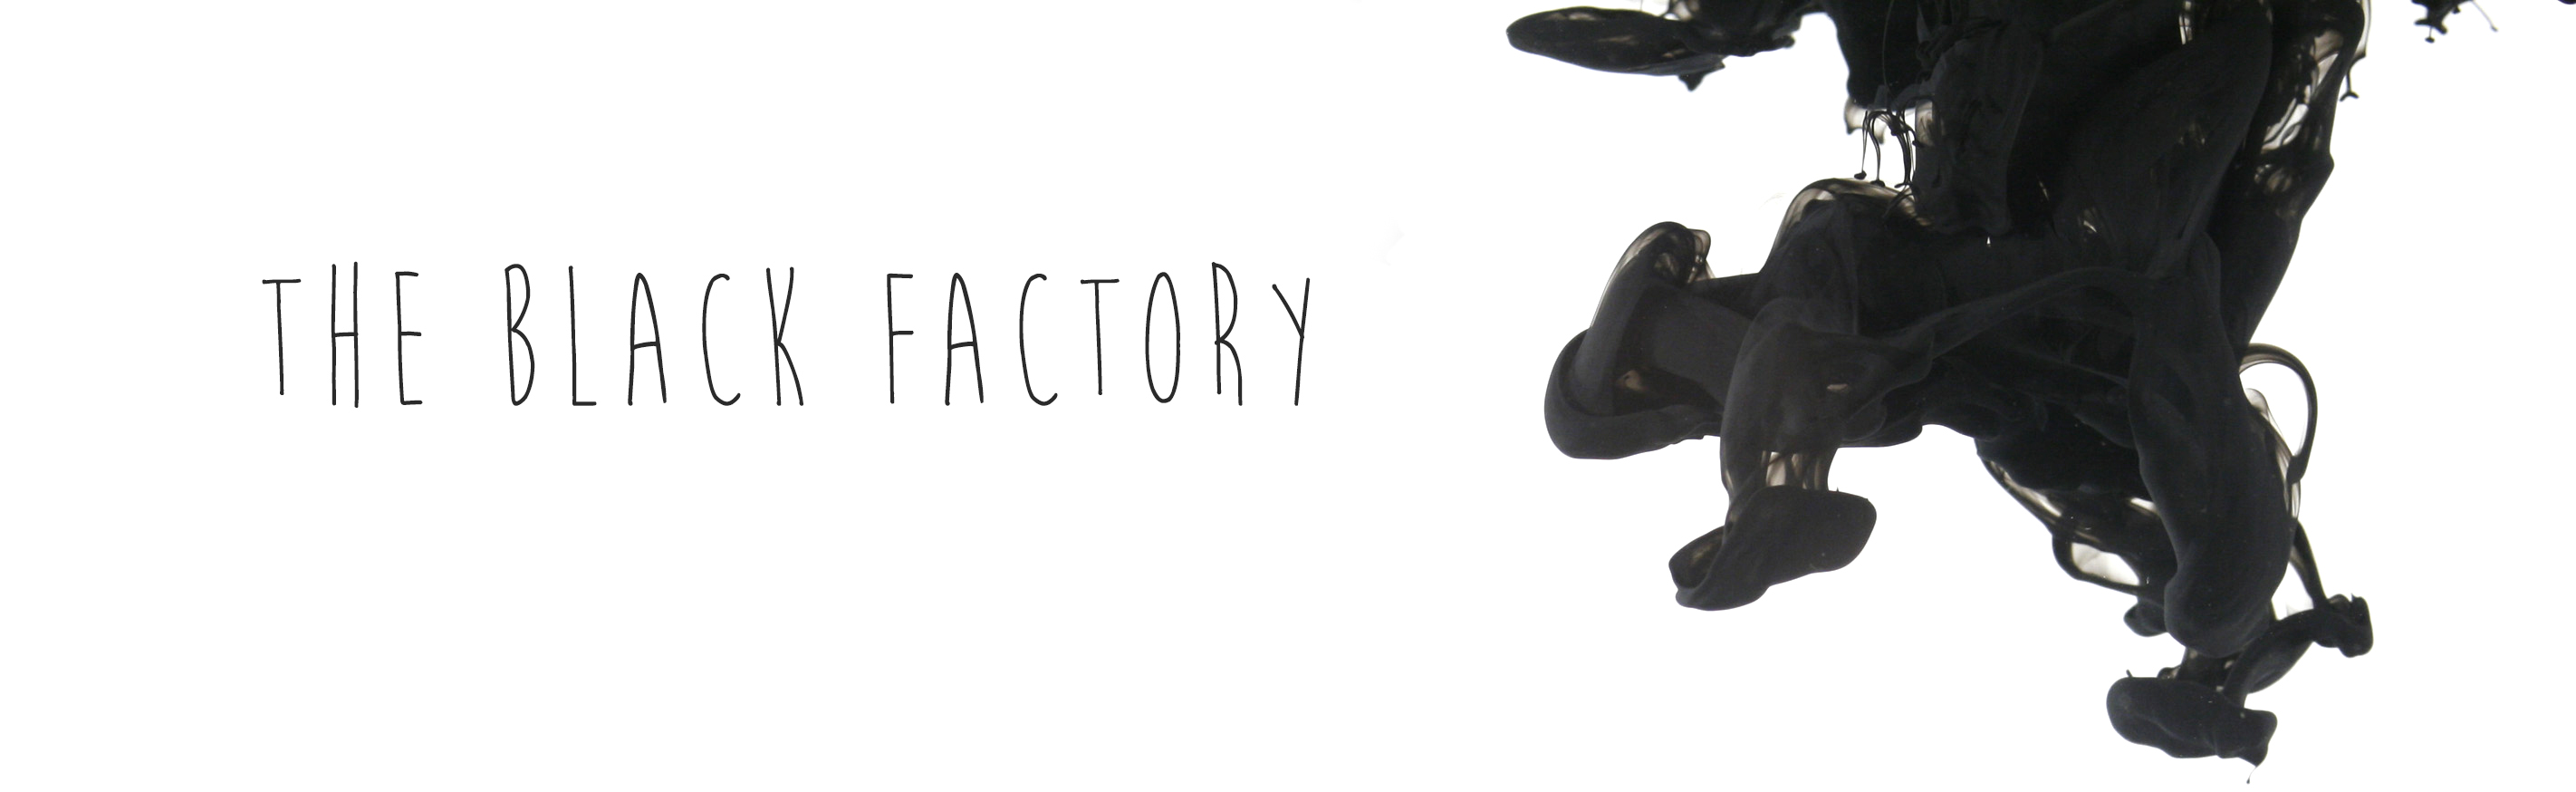 The black factory